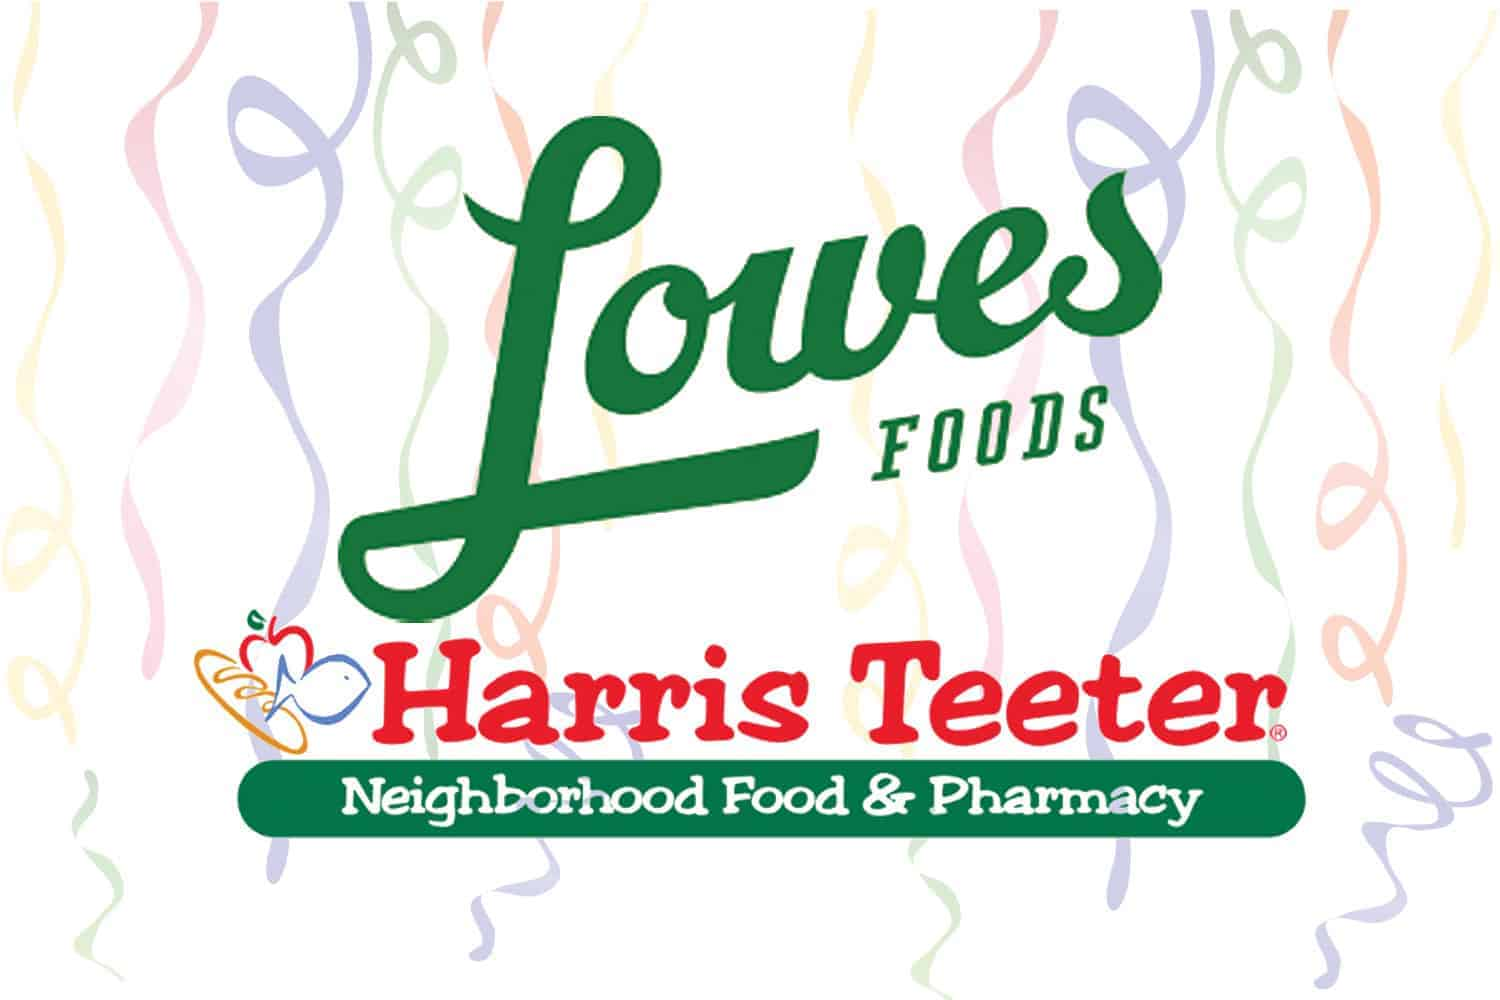 Lowes Foods Harris Teeter